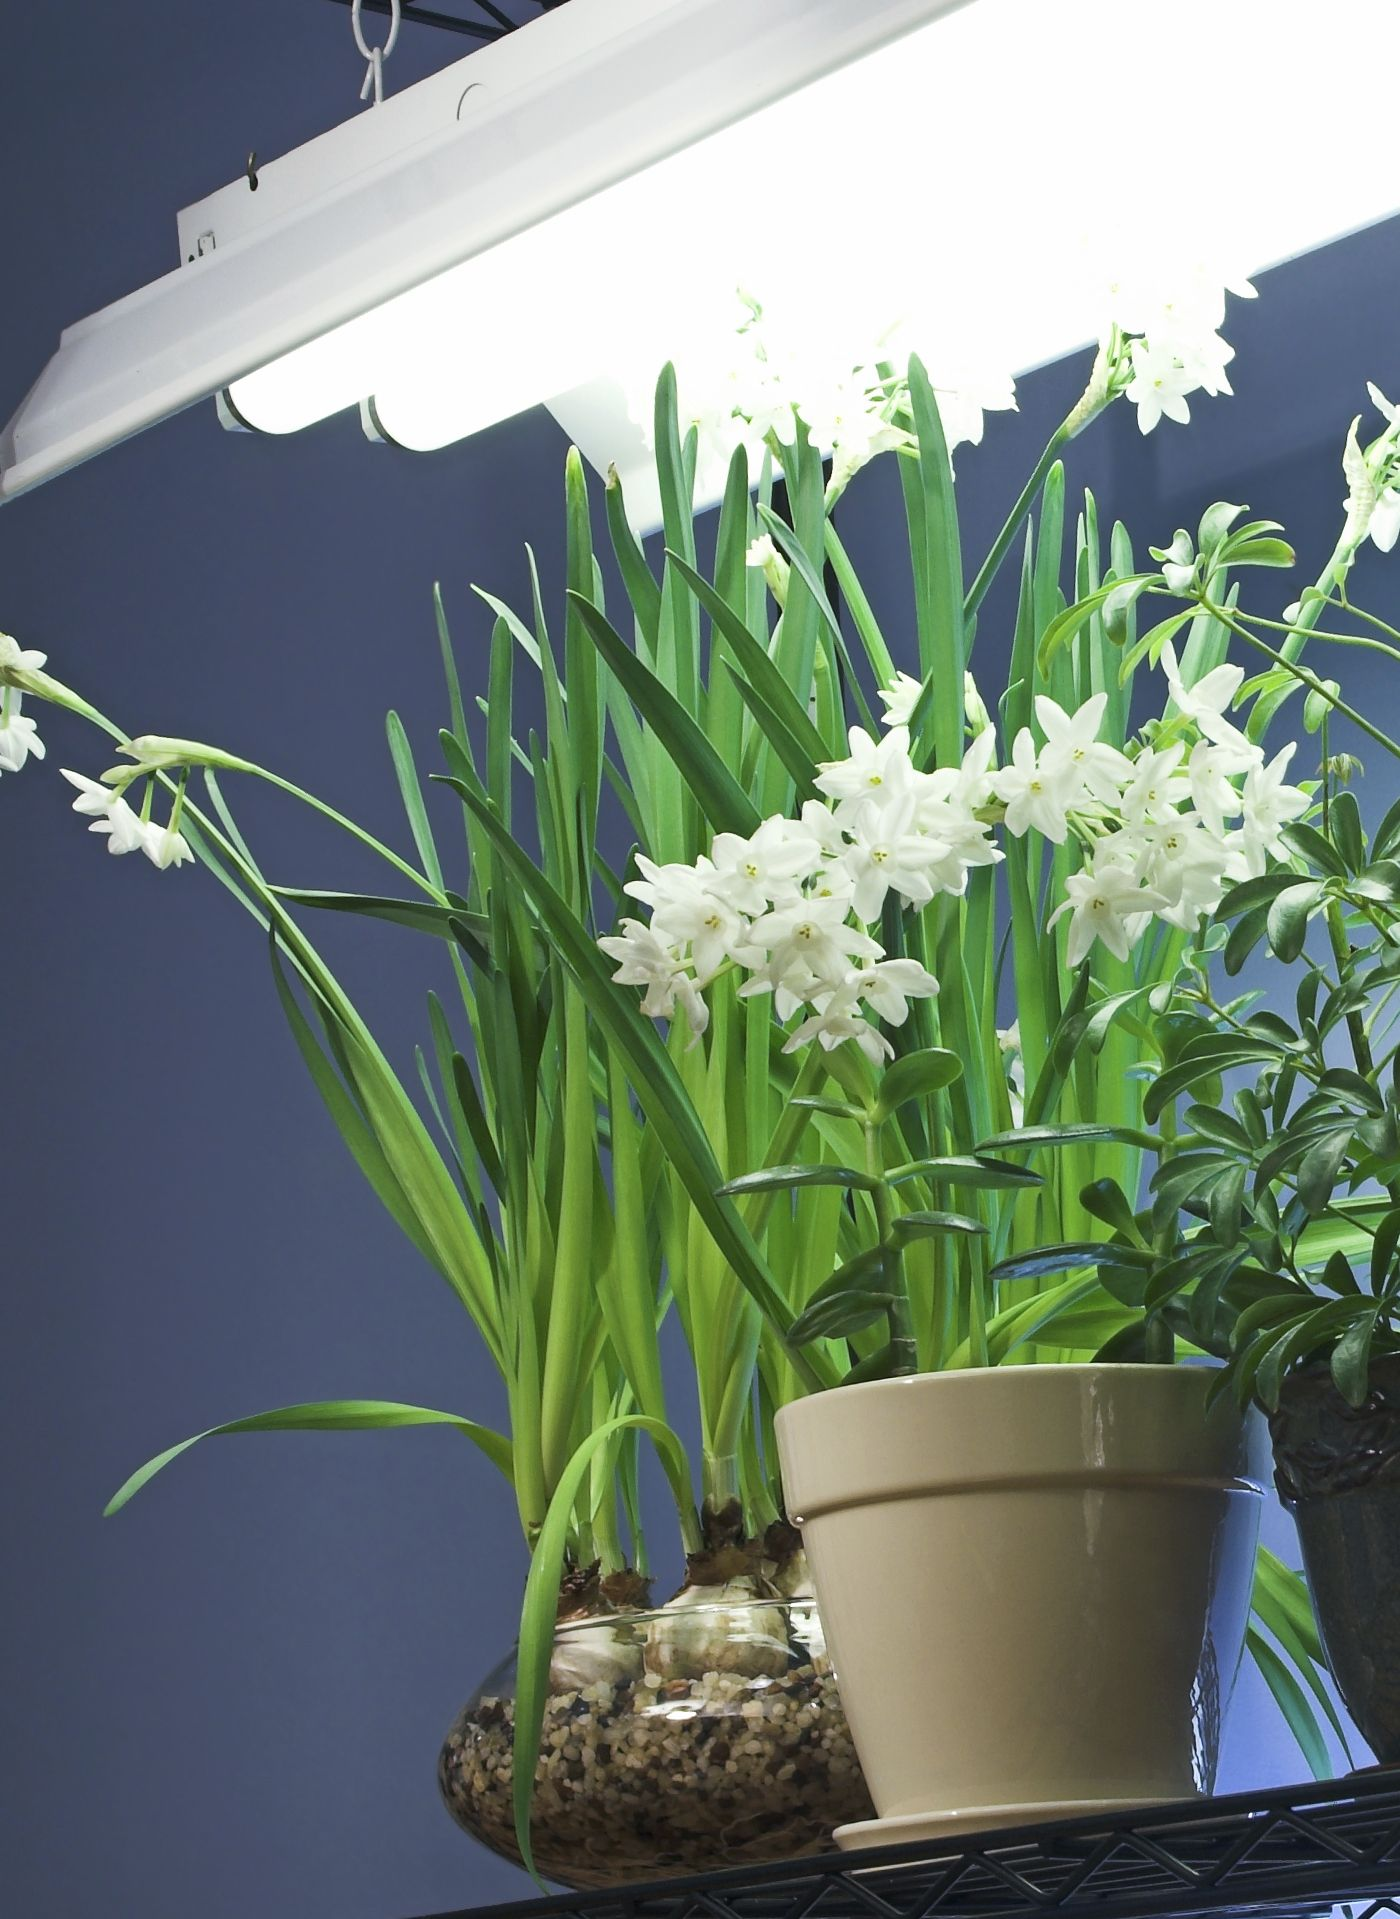 Fluorescent Light And Plants Lighting Options For Indoor